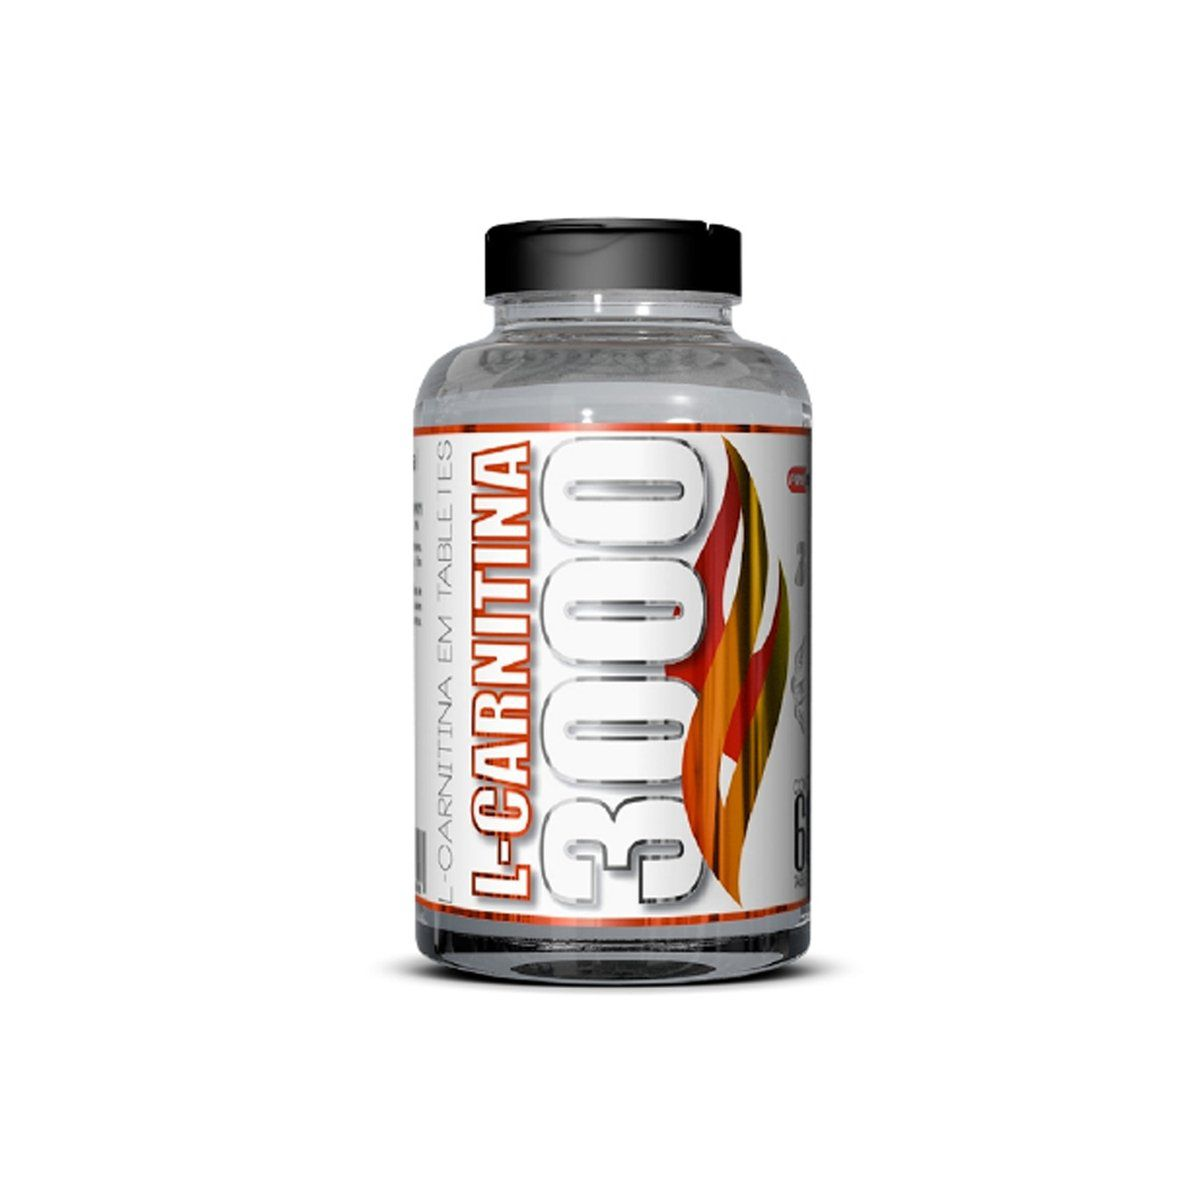 L-Carnitina 3000 | Pro Corps | 60 TABLETS